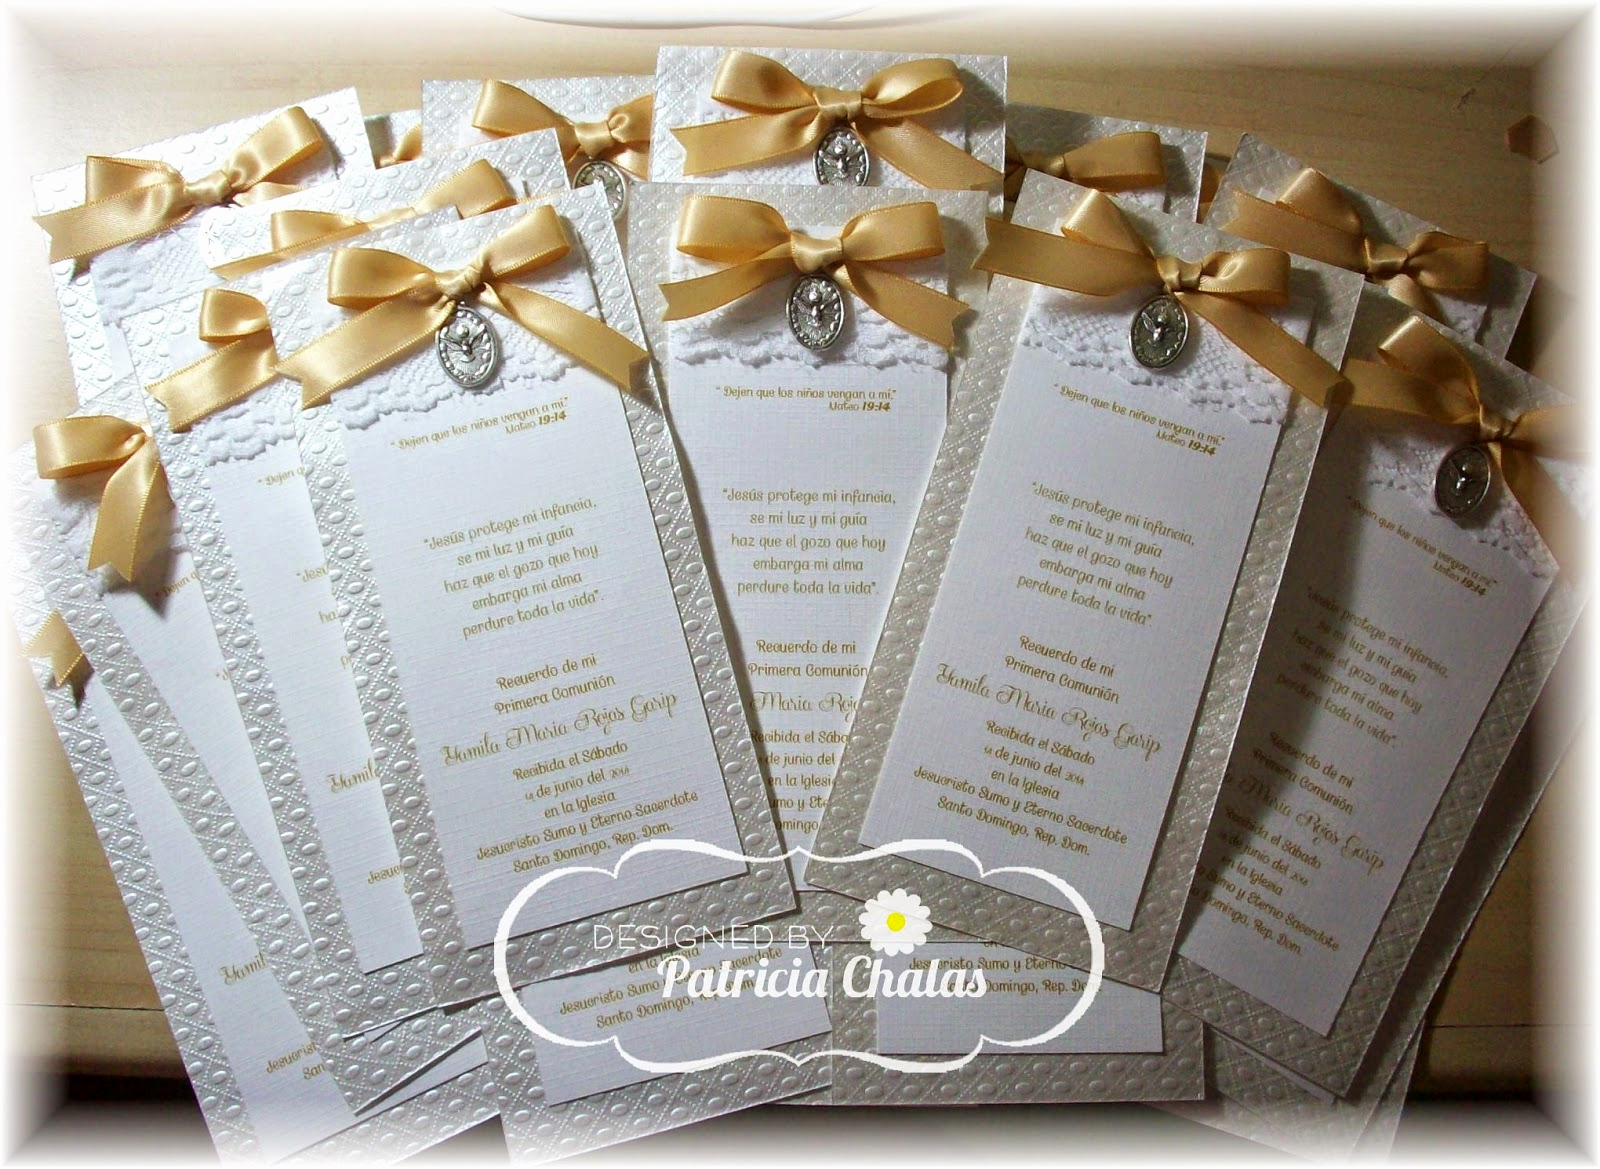 First Communion Invitation Ideas Best Of Mis Creaciones by Patricia Chalas First Munion